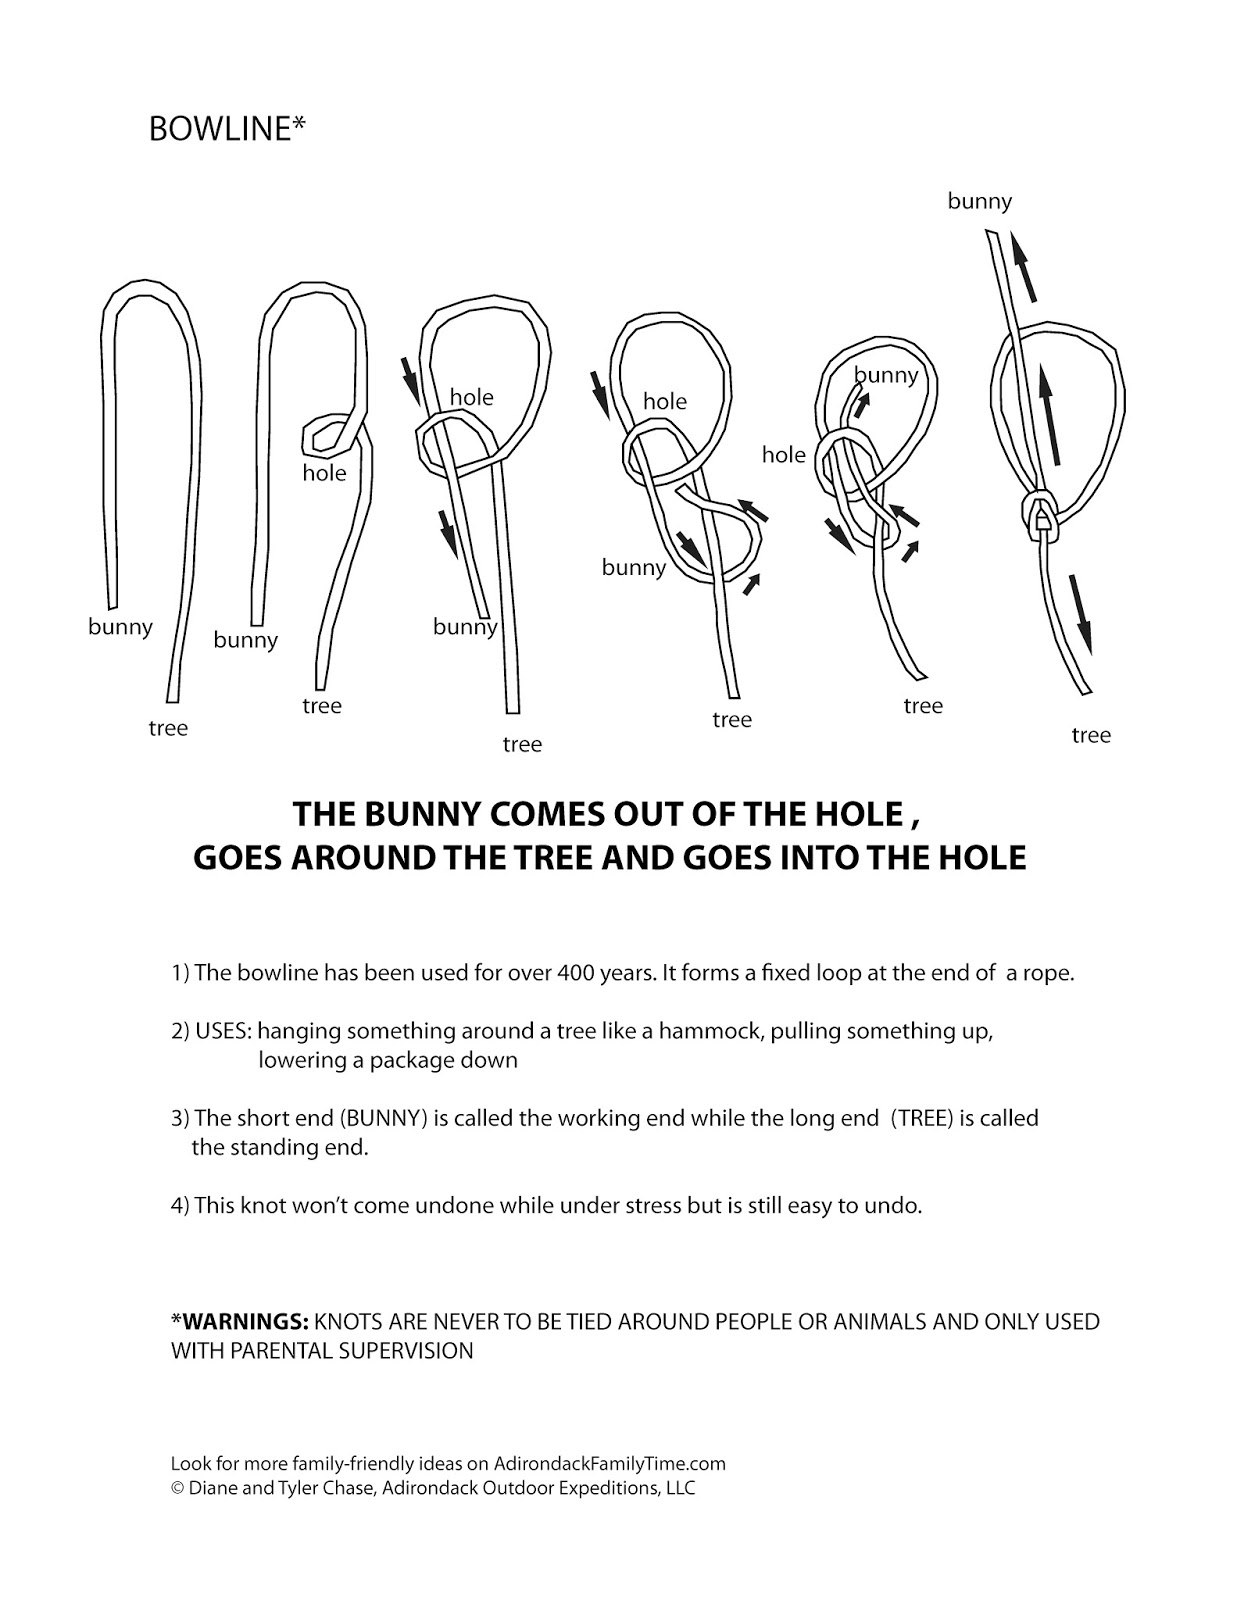 Free Activity Learn To Tie A Bowline Print Out This Knot